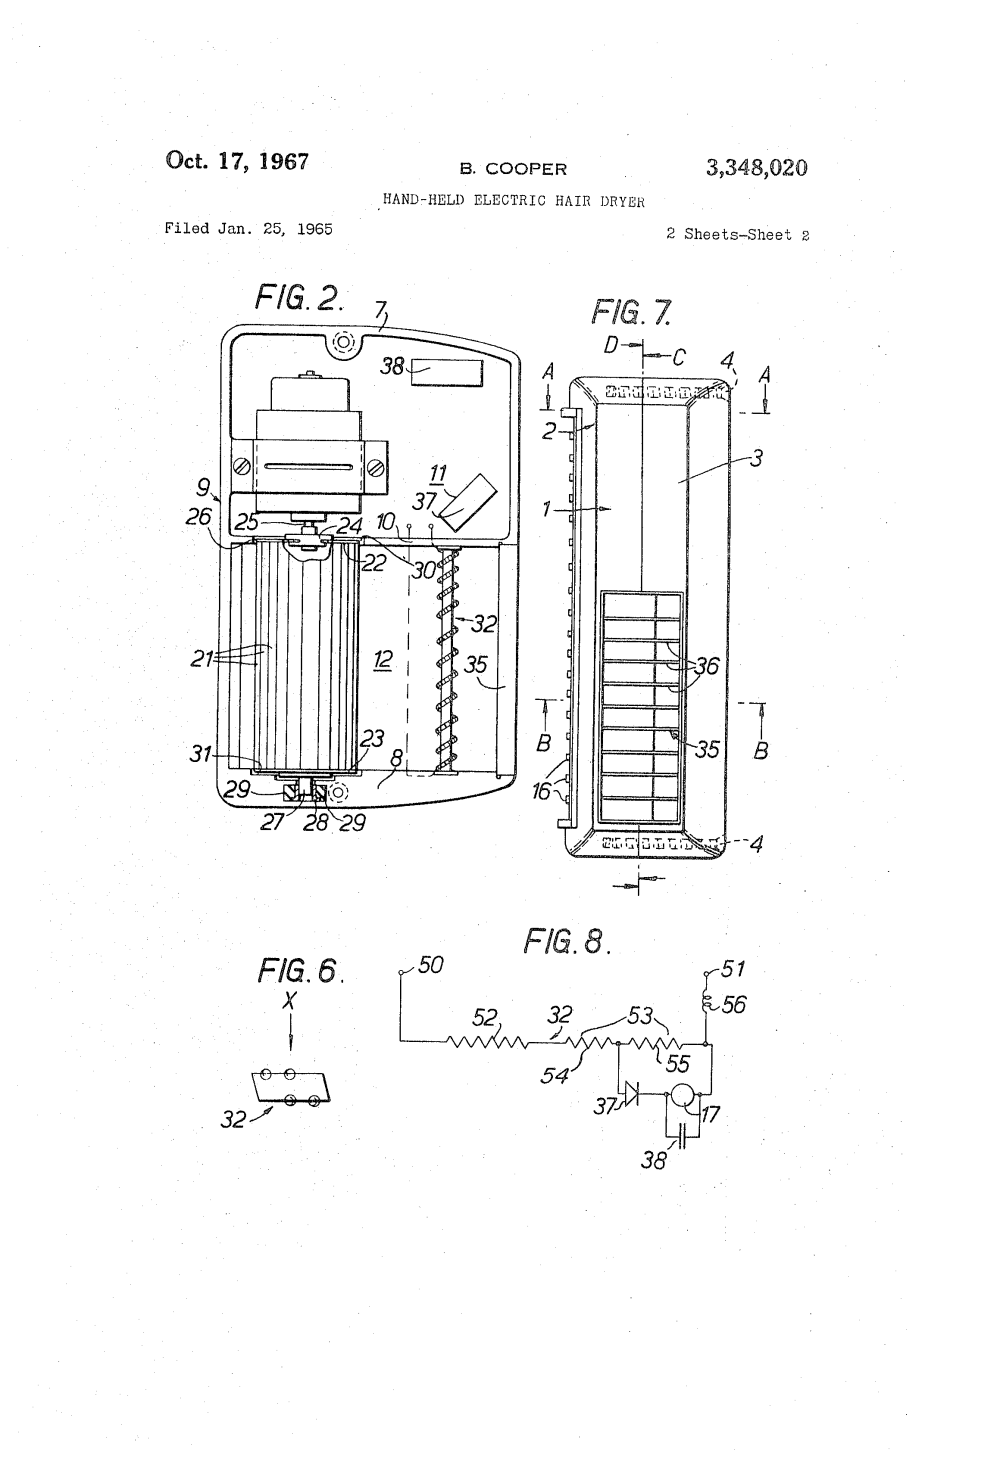 medium resolution of  us3348020 1 patent us3348020 hand held electric hair dryer google patents hair dryer wiring diagram at